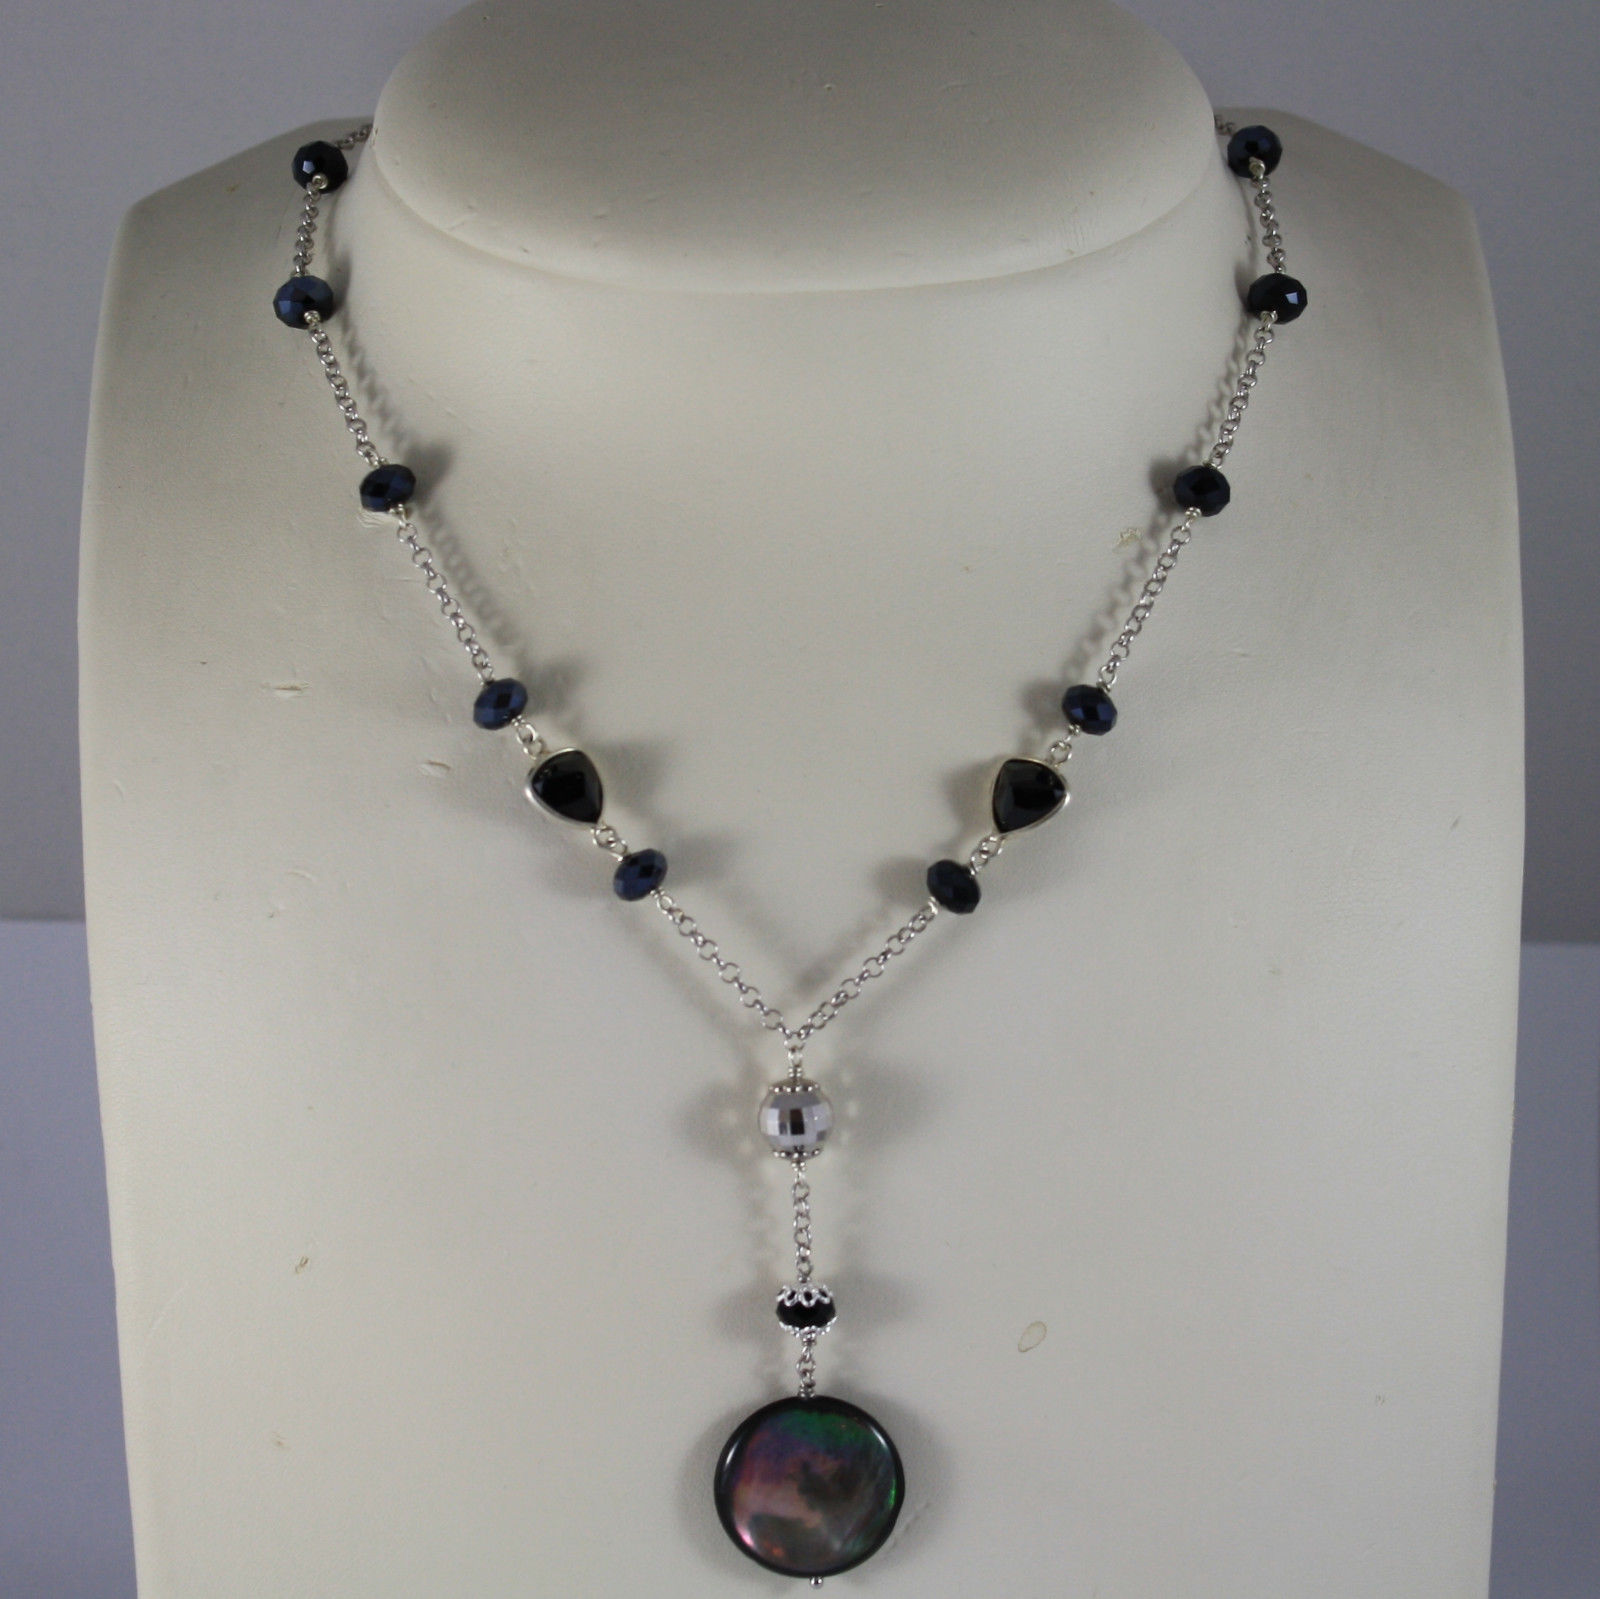 .925 RHODIUM SILVER NECKLACE WITH DISC OF MOTHER OF PEARL AND BLACK CRYSTALS